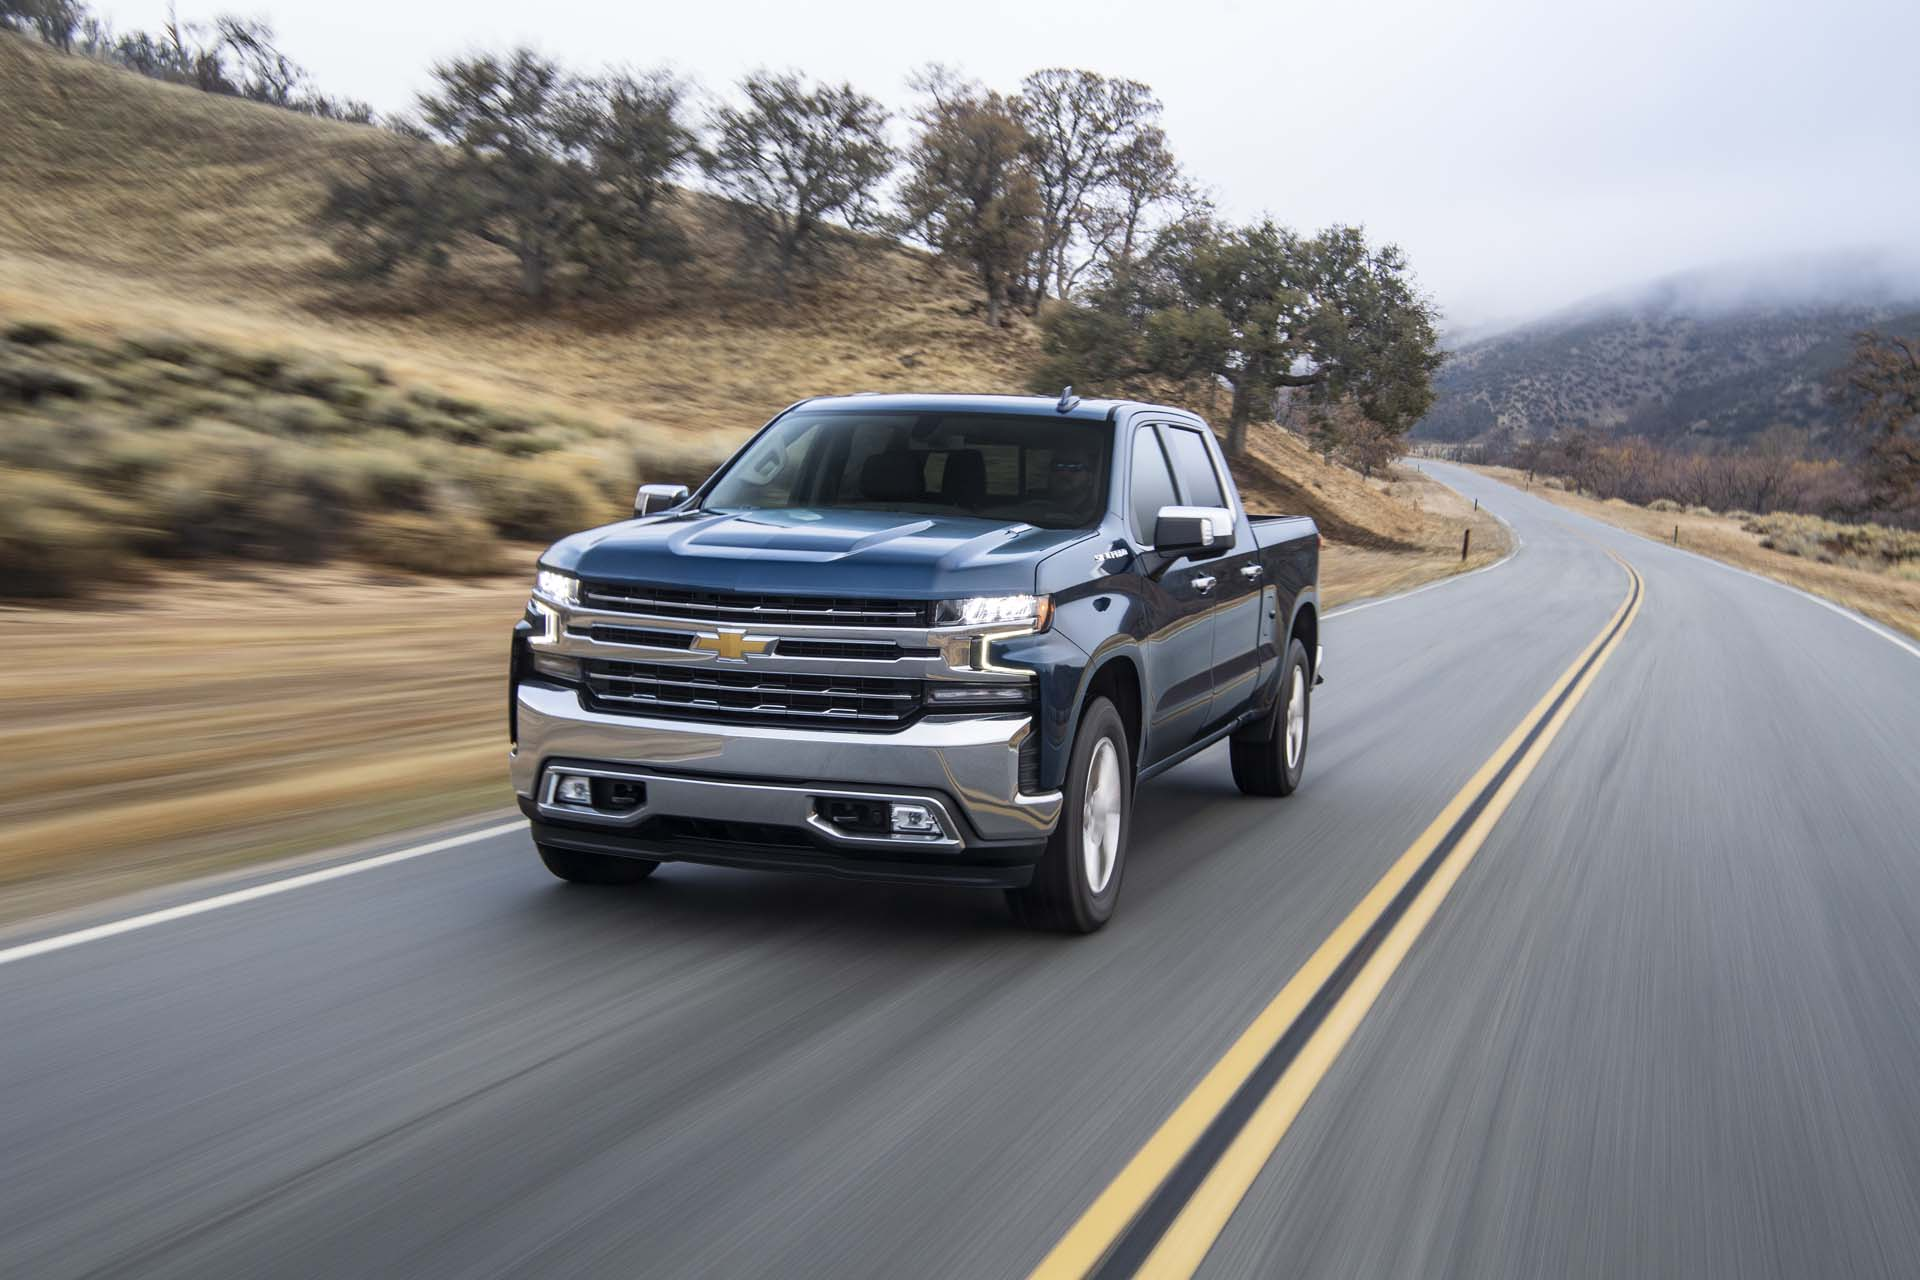 2020 Chevrolet Silverado Vs 2020 Gmc Sierra 1500 Compare Trucks